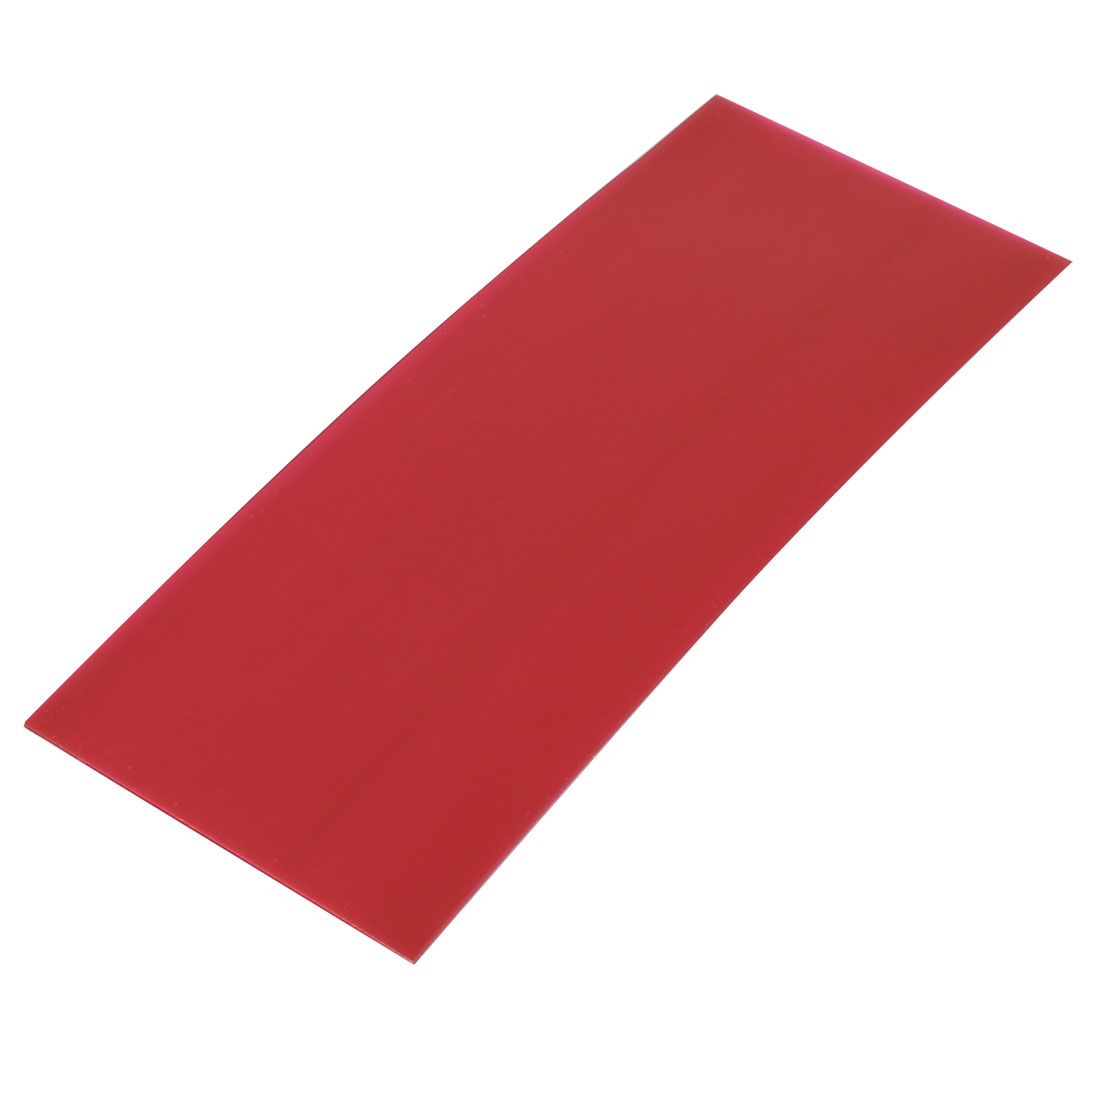 29.5mm Flat Width 72mm Long PVC Heat Shrinkable Tube Dark Red for 18650 Battery